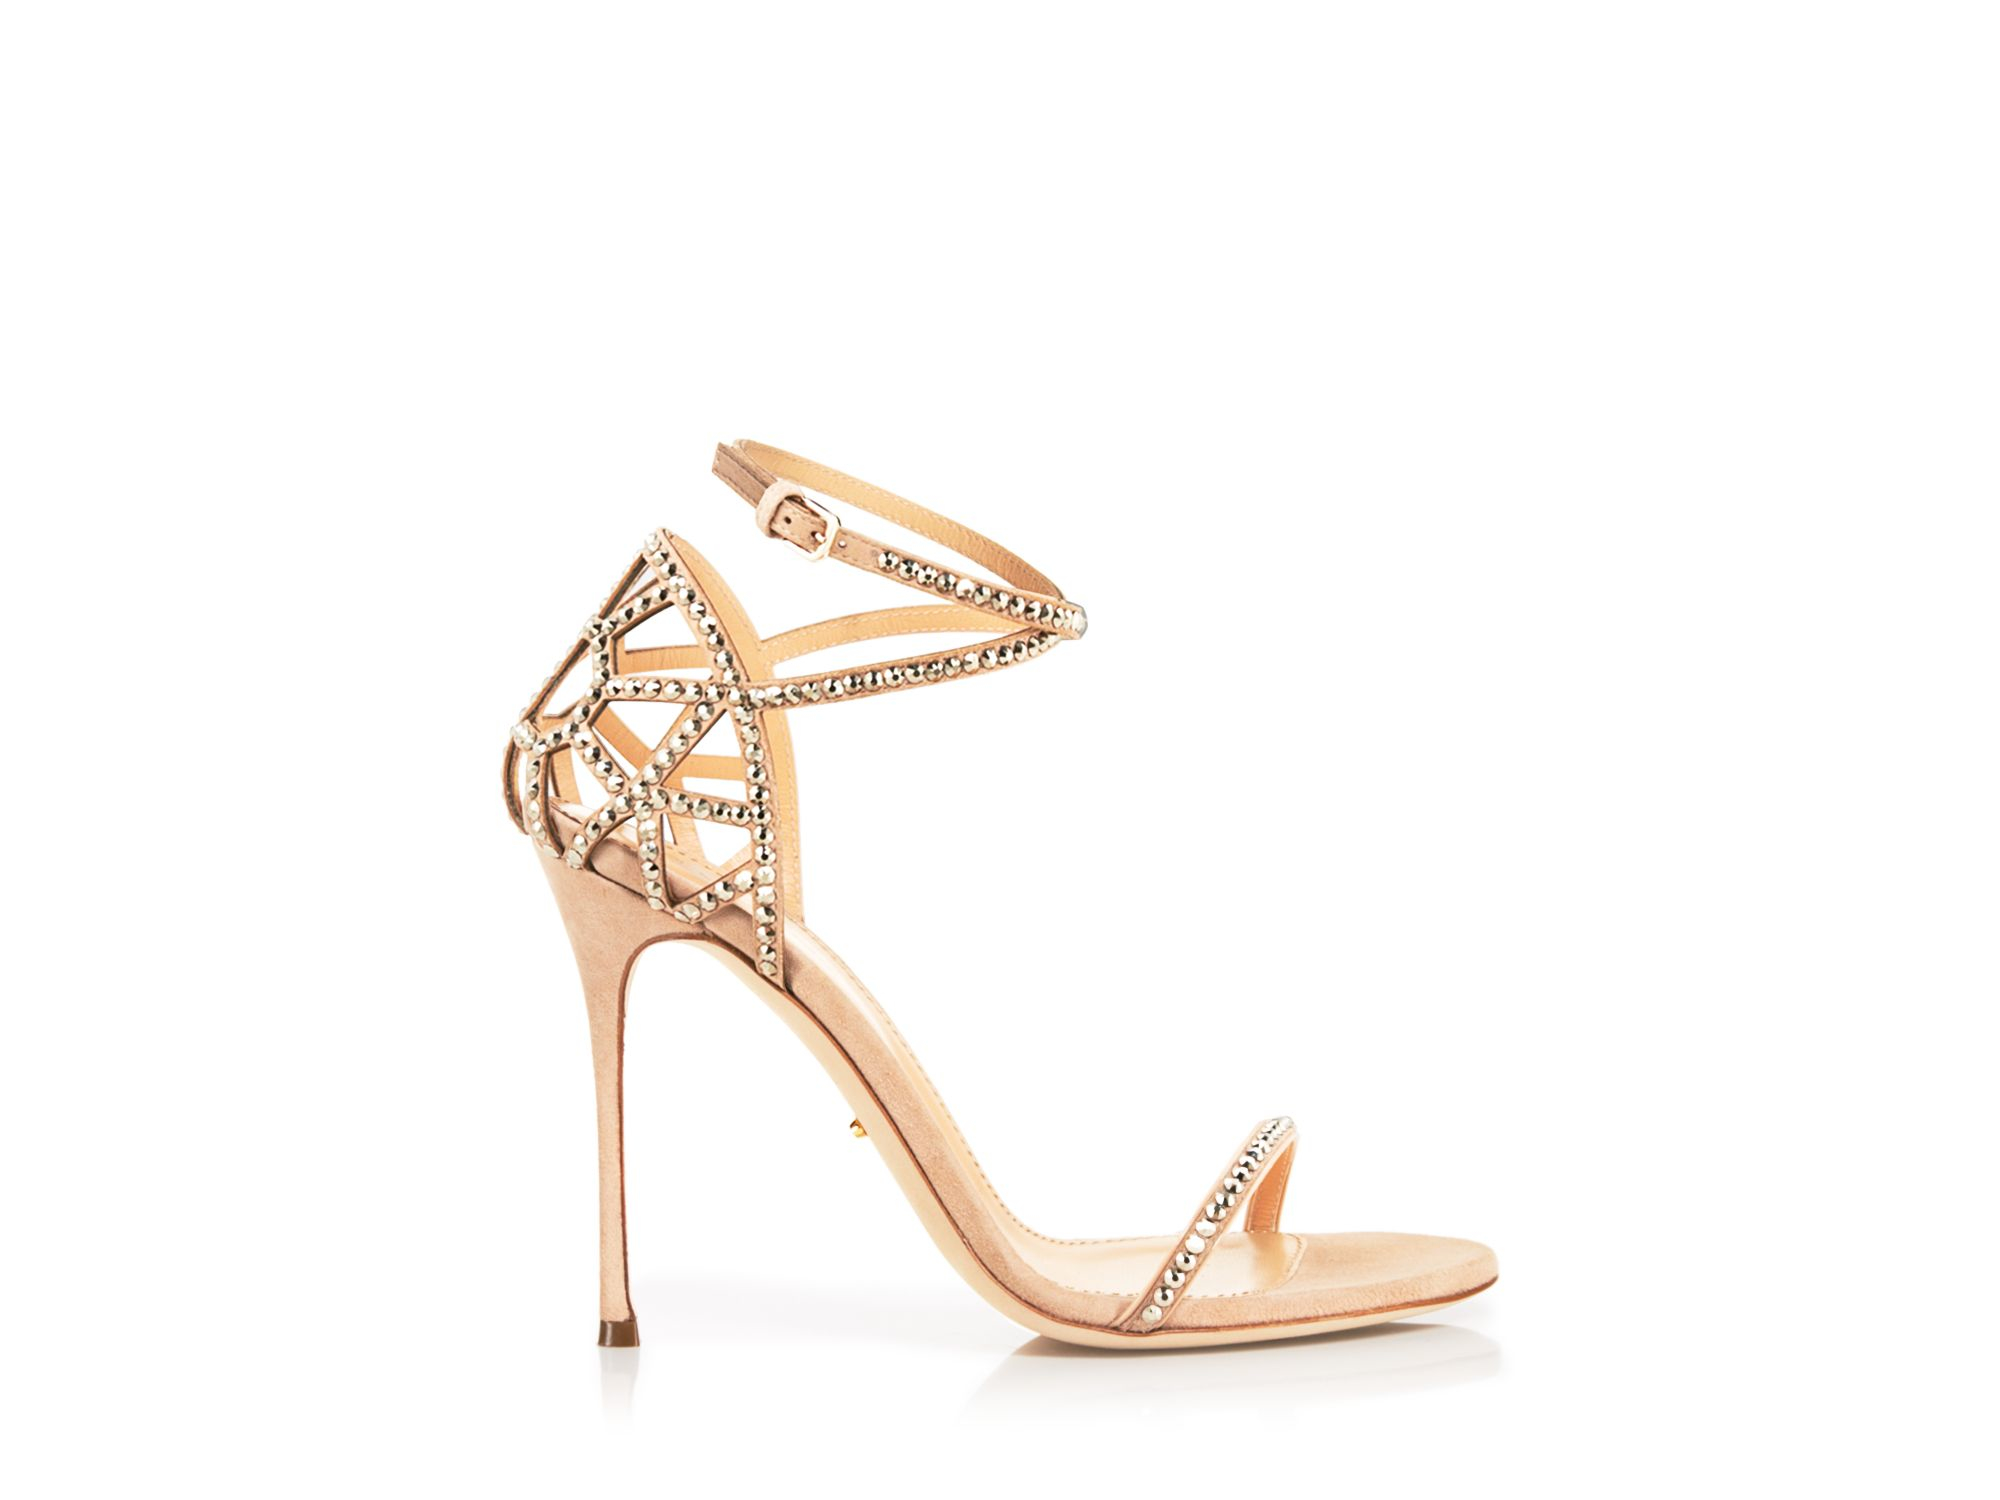 Lyst - Sergio rossi Strappy Sandals - Puzzle High Heel in Natural